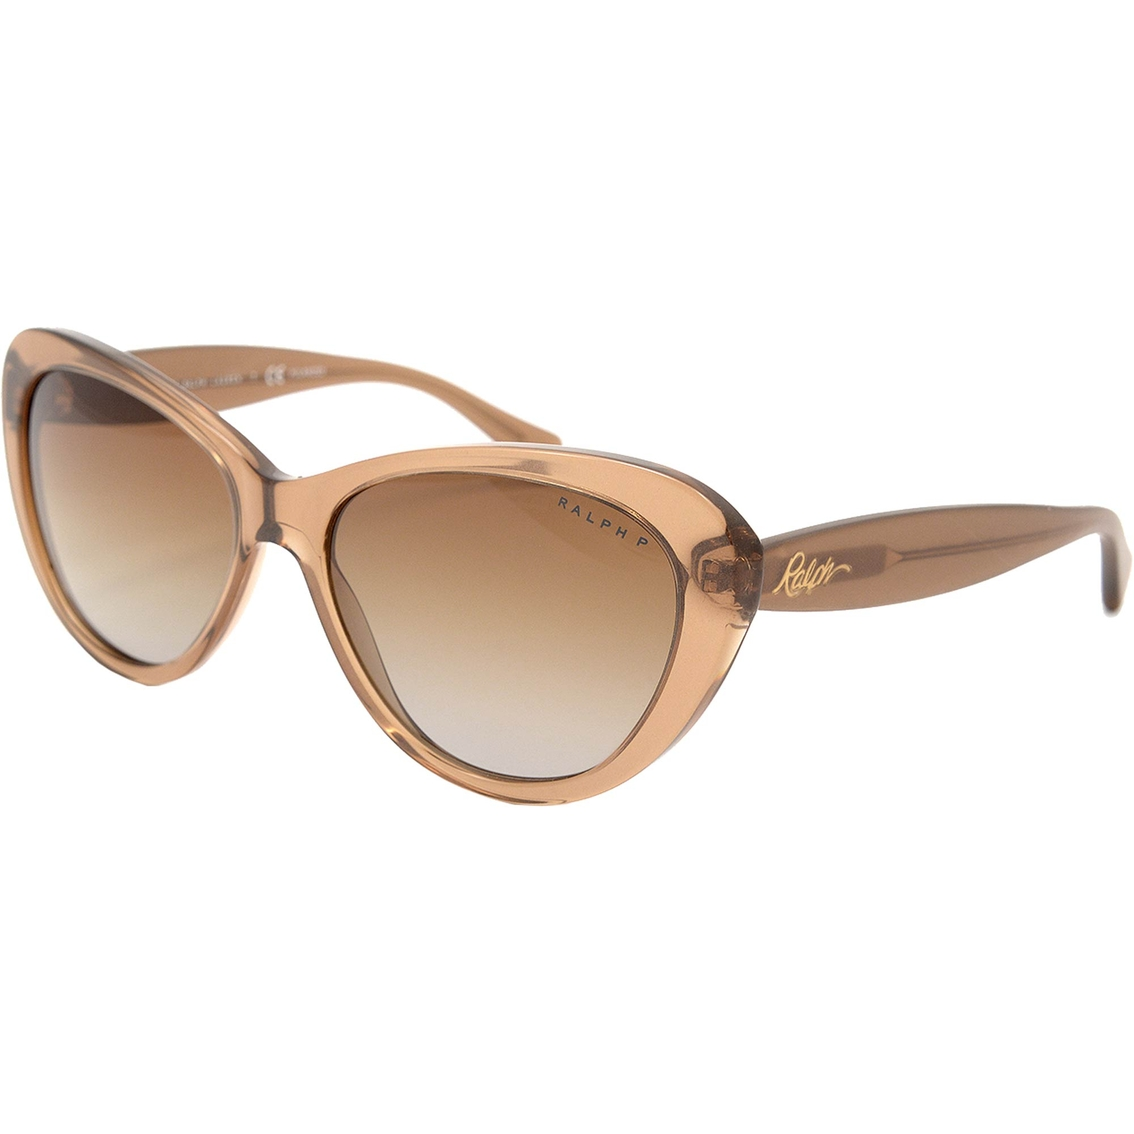 ralph lauren sunglasses  ralph lauren sunglasses